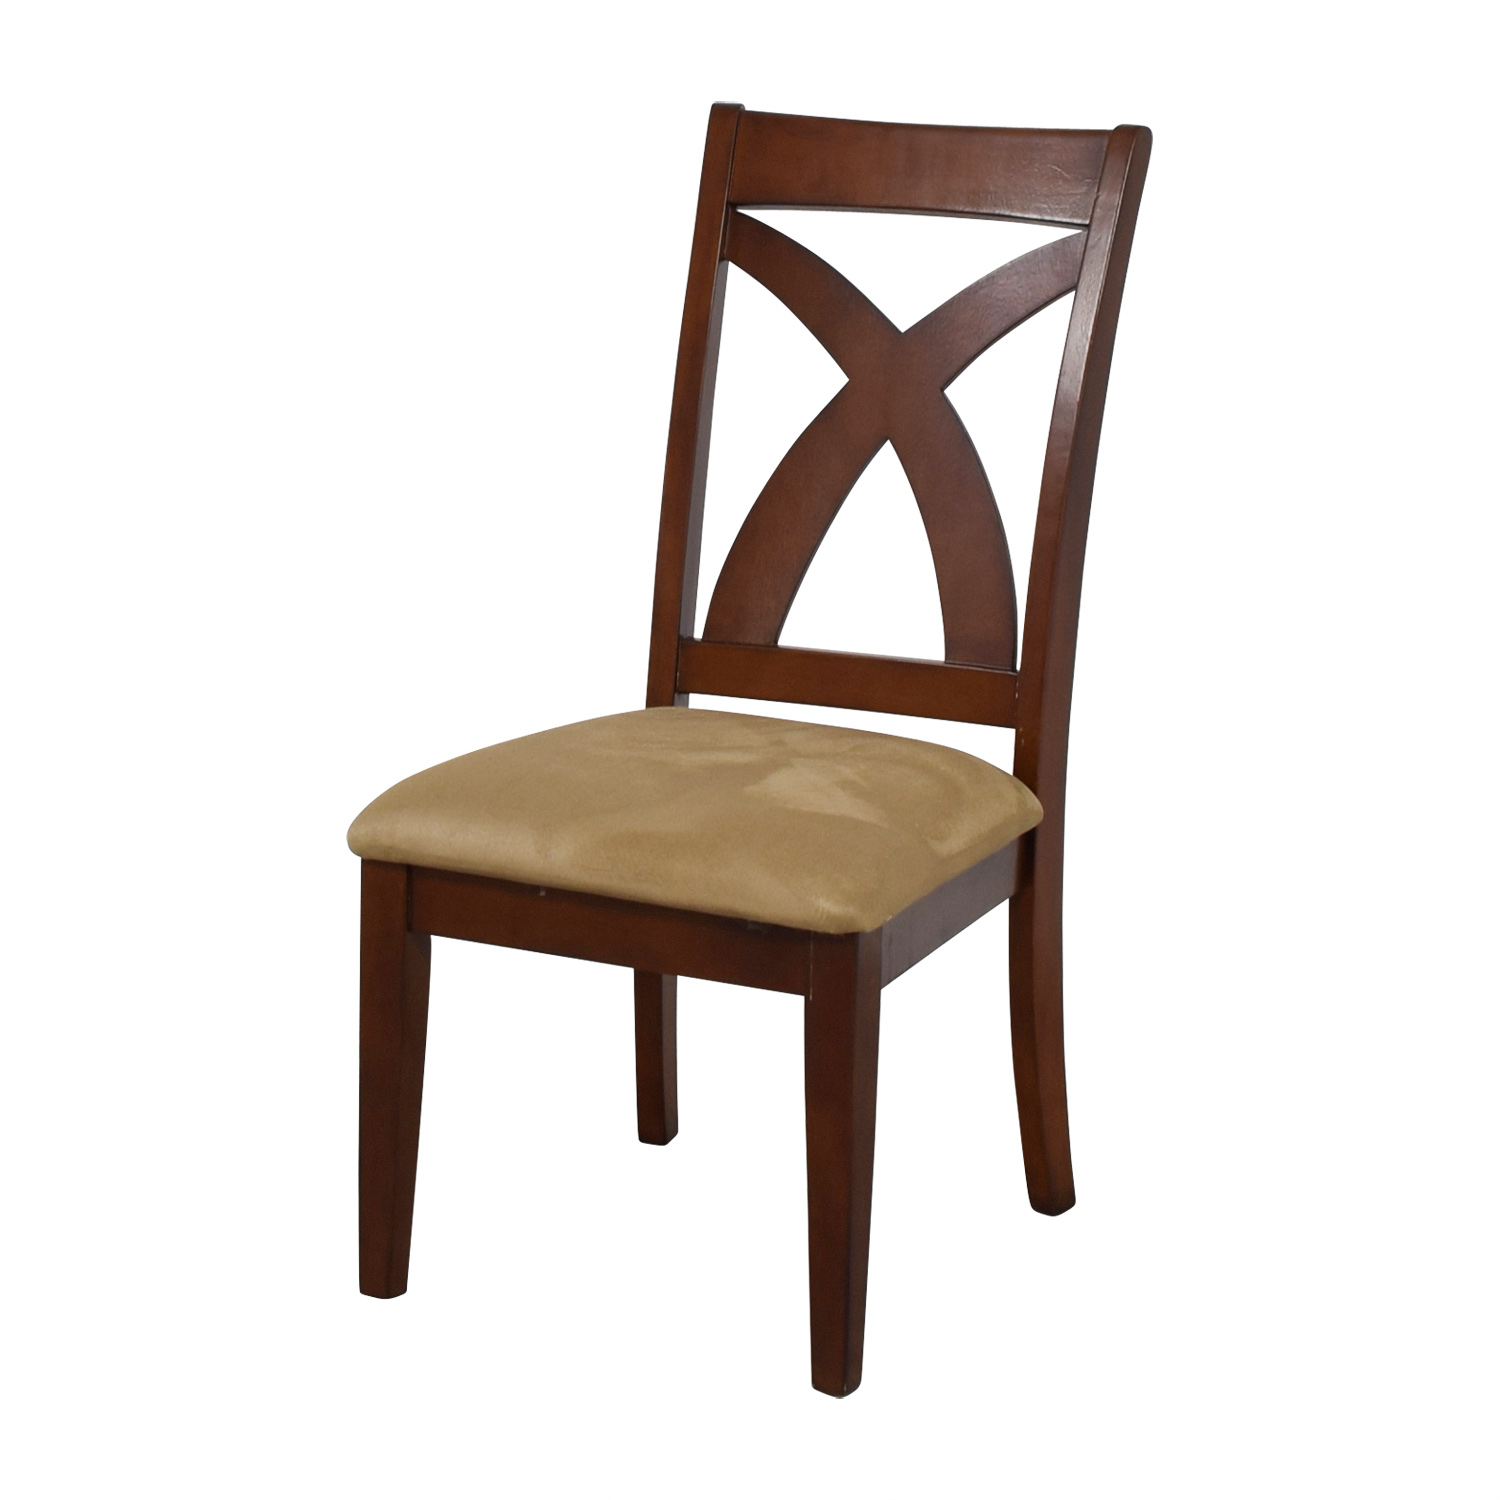 84 Off Solid Wood Chair With Cross Back Amp Padded Seat